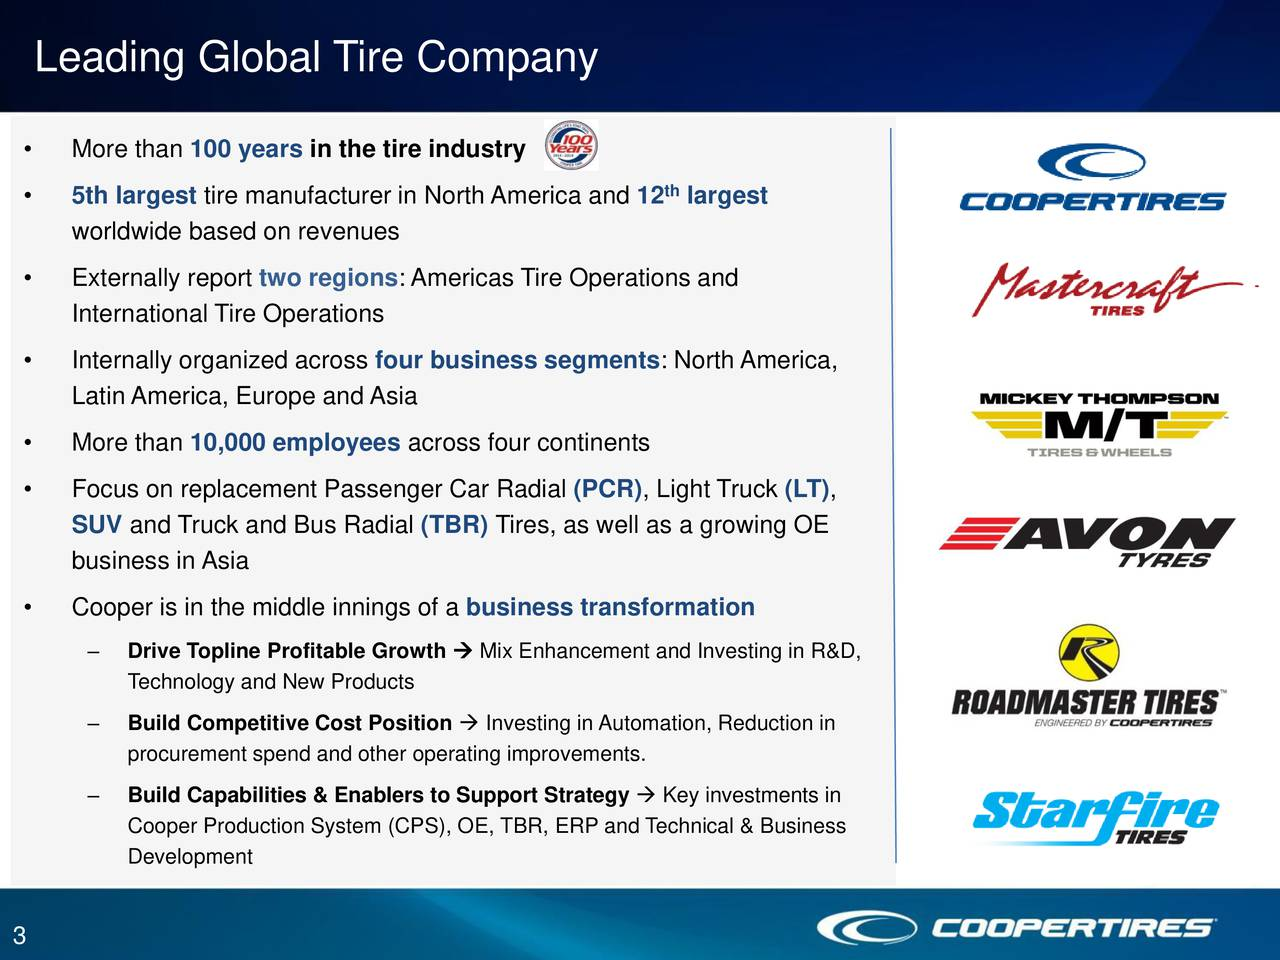 More than 100 years in the tire industry th 5th largest tire manufacturer in North America and 12 largest worldwide based on revenues Externally report two regions: Americas Tire Operations and International Tire Operations Internally organized across four business segments: North America, Latin America, Europe and Asia More than 10,000 employees across four continents Focus on replacement Passenger Car Radial (PCR), Light Truck (LT), SUV and Truck and Bus Radial (TBR) Tires, as well as a growing OE business in Asia Cooper is in the middle innings of a business transformation Drive Topline Profitable Growth  Mix Enhancement and Investing in R&D, Technology and New Products Build Competitive Cost Position  Investing in Automation, Reduction in procurement spend and other operating improvements. Build Capabilities & Enablers to Support Strategy  Key investments in Cooper Production System (CPS), OE, TBR, ERP and Technical & Business Development 3